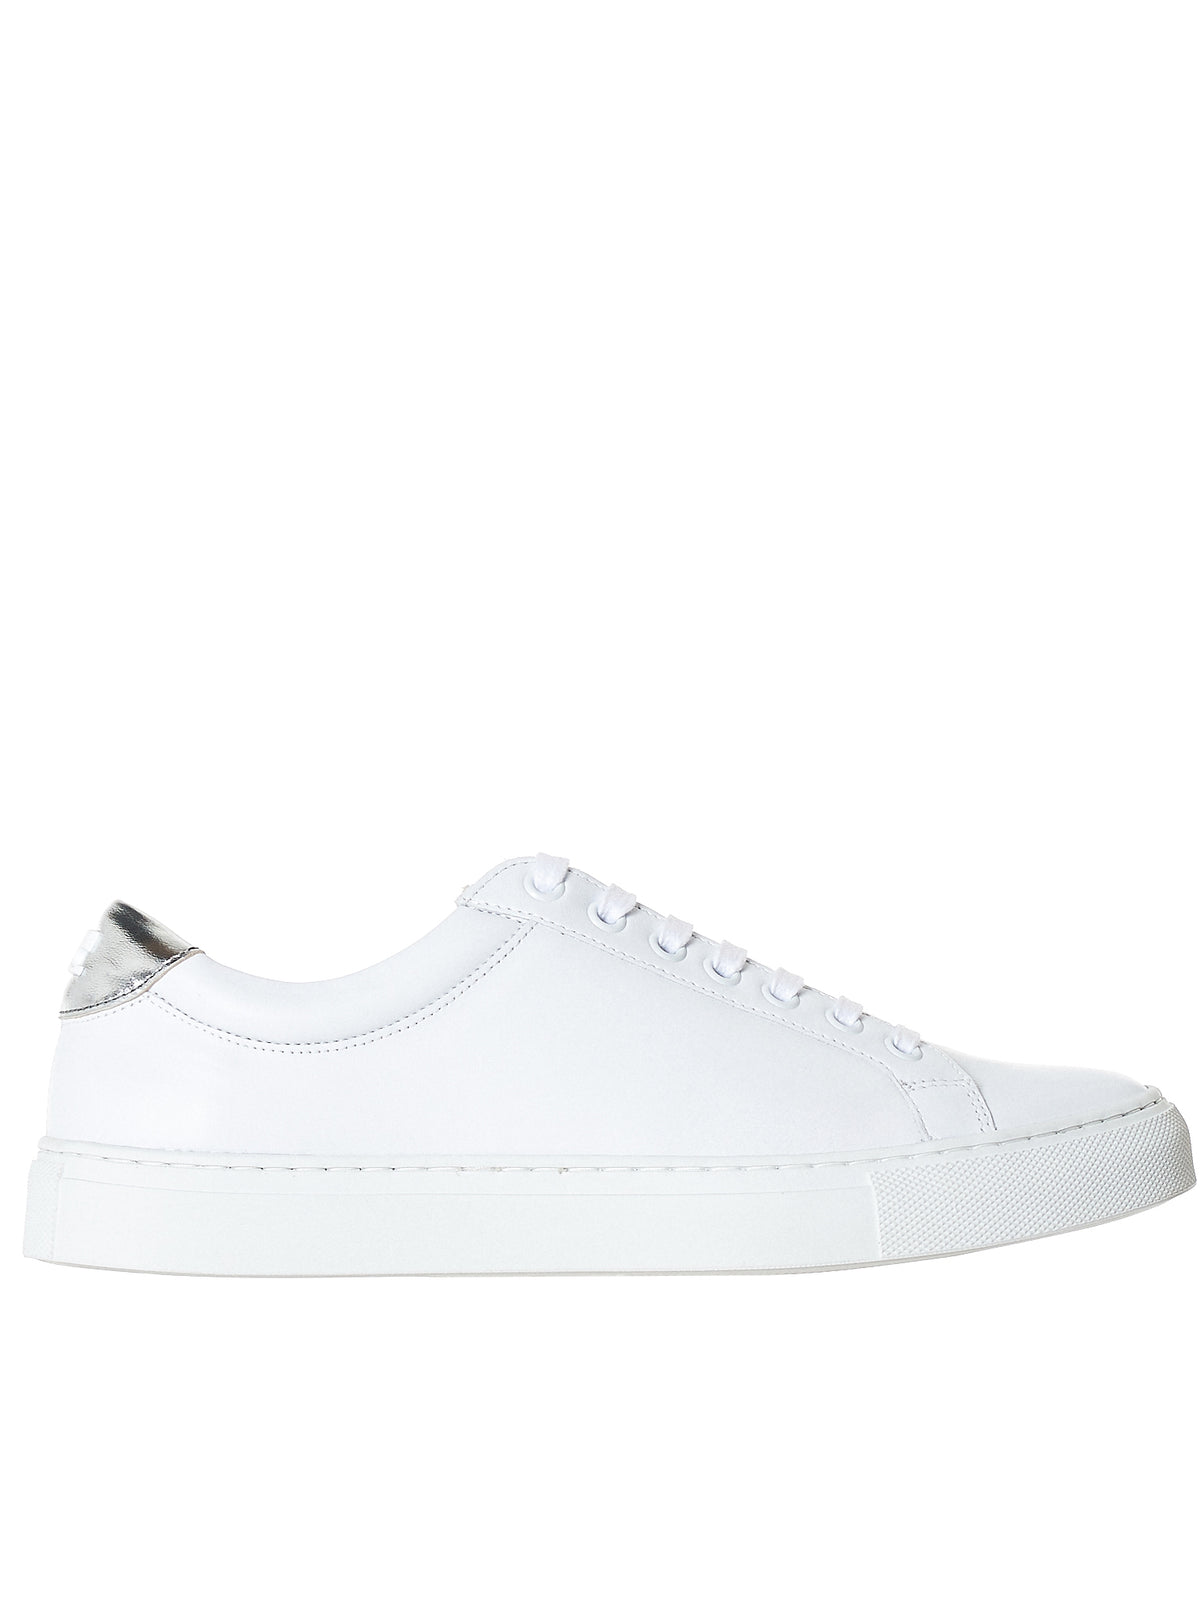 Courreges white sneaker - H.Lorenzo Side